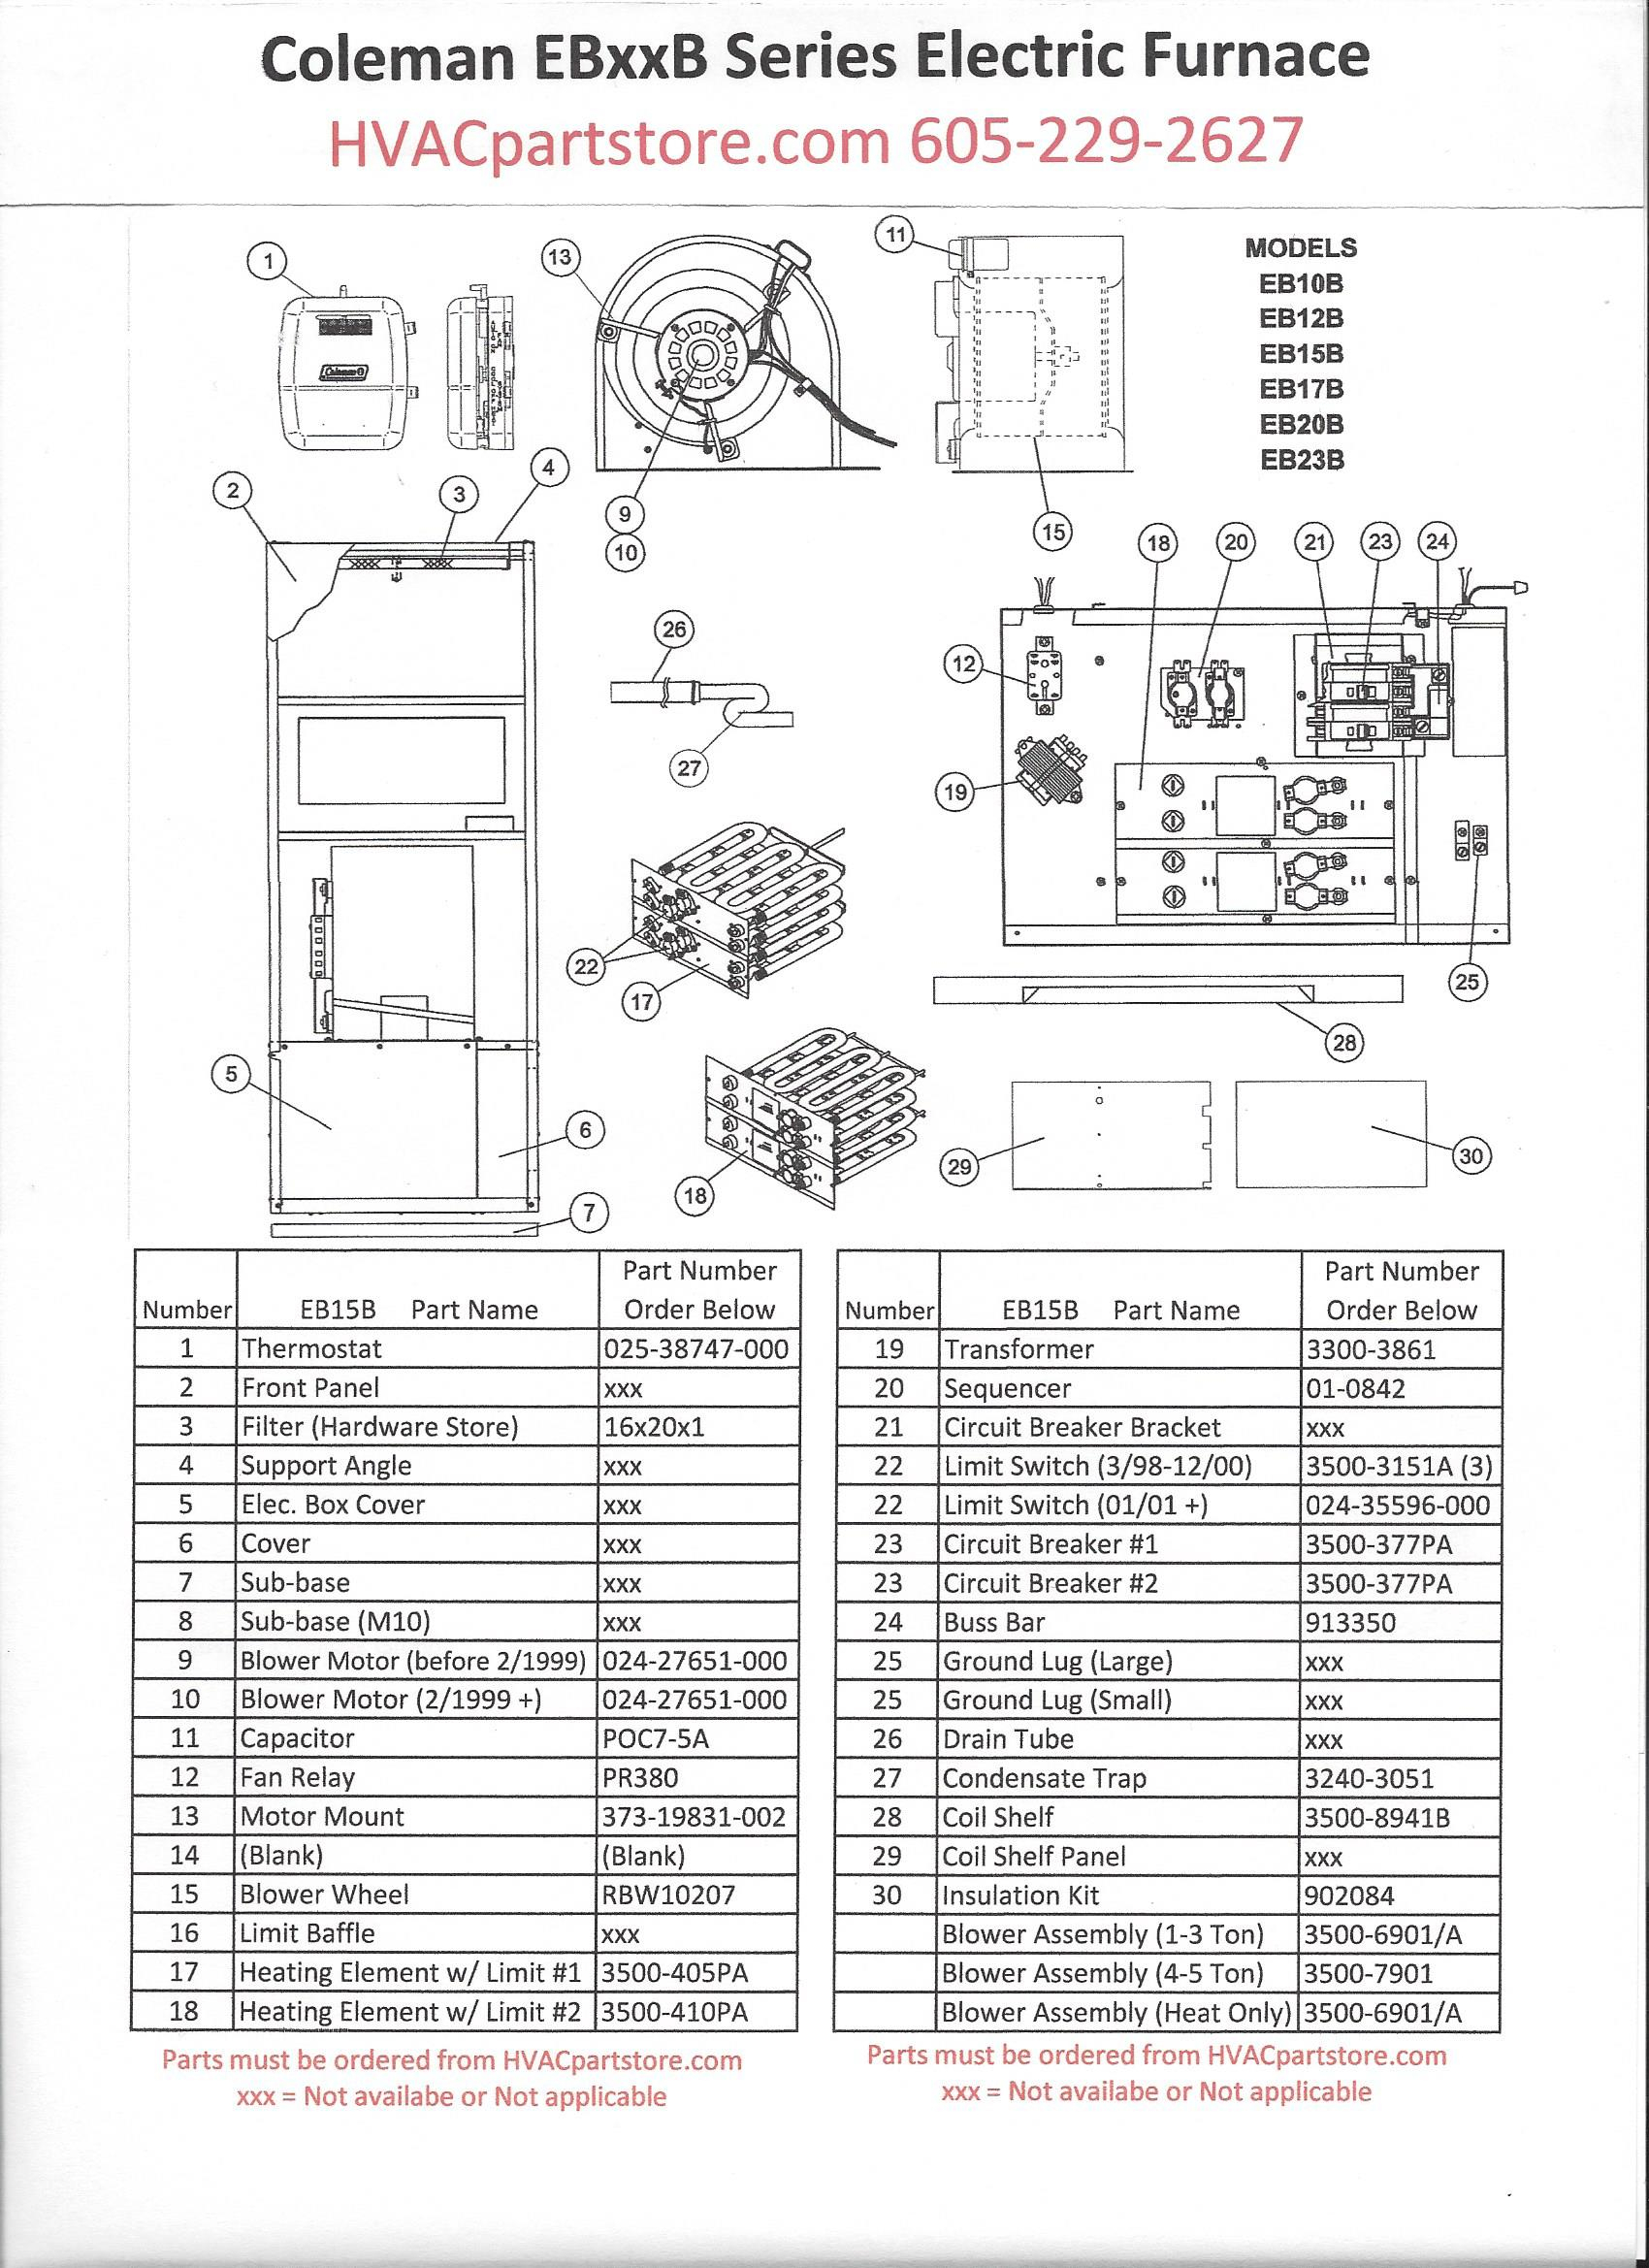 boss v plow wiring diagram Download-Beautiful Intertherm Electric Furnace Wiring Diagram 20 For Boss Snow Plow Wiring Diagram with Intertherm Electric Furnace Wiring Diagram 9-i